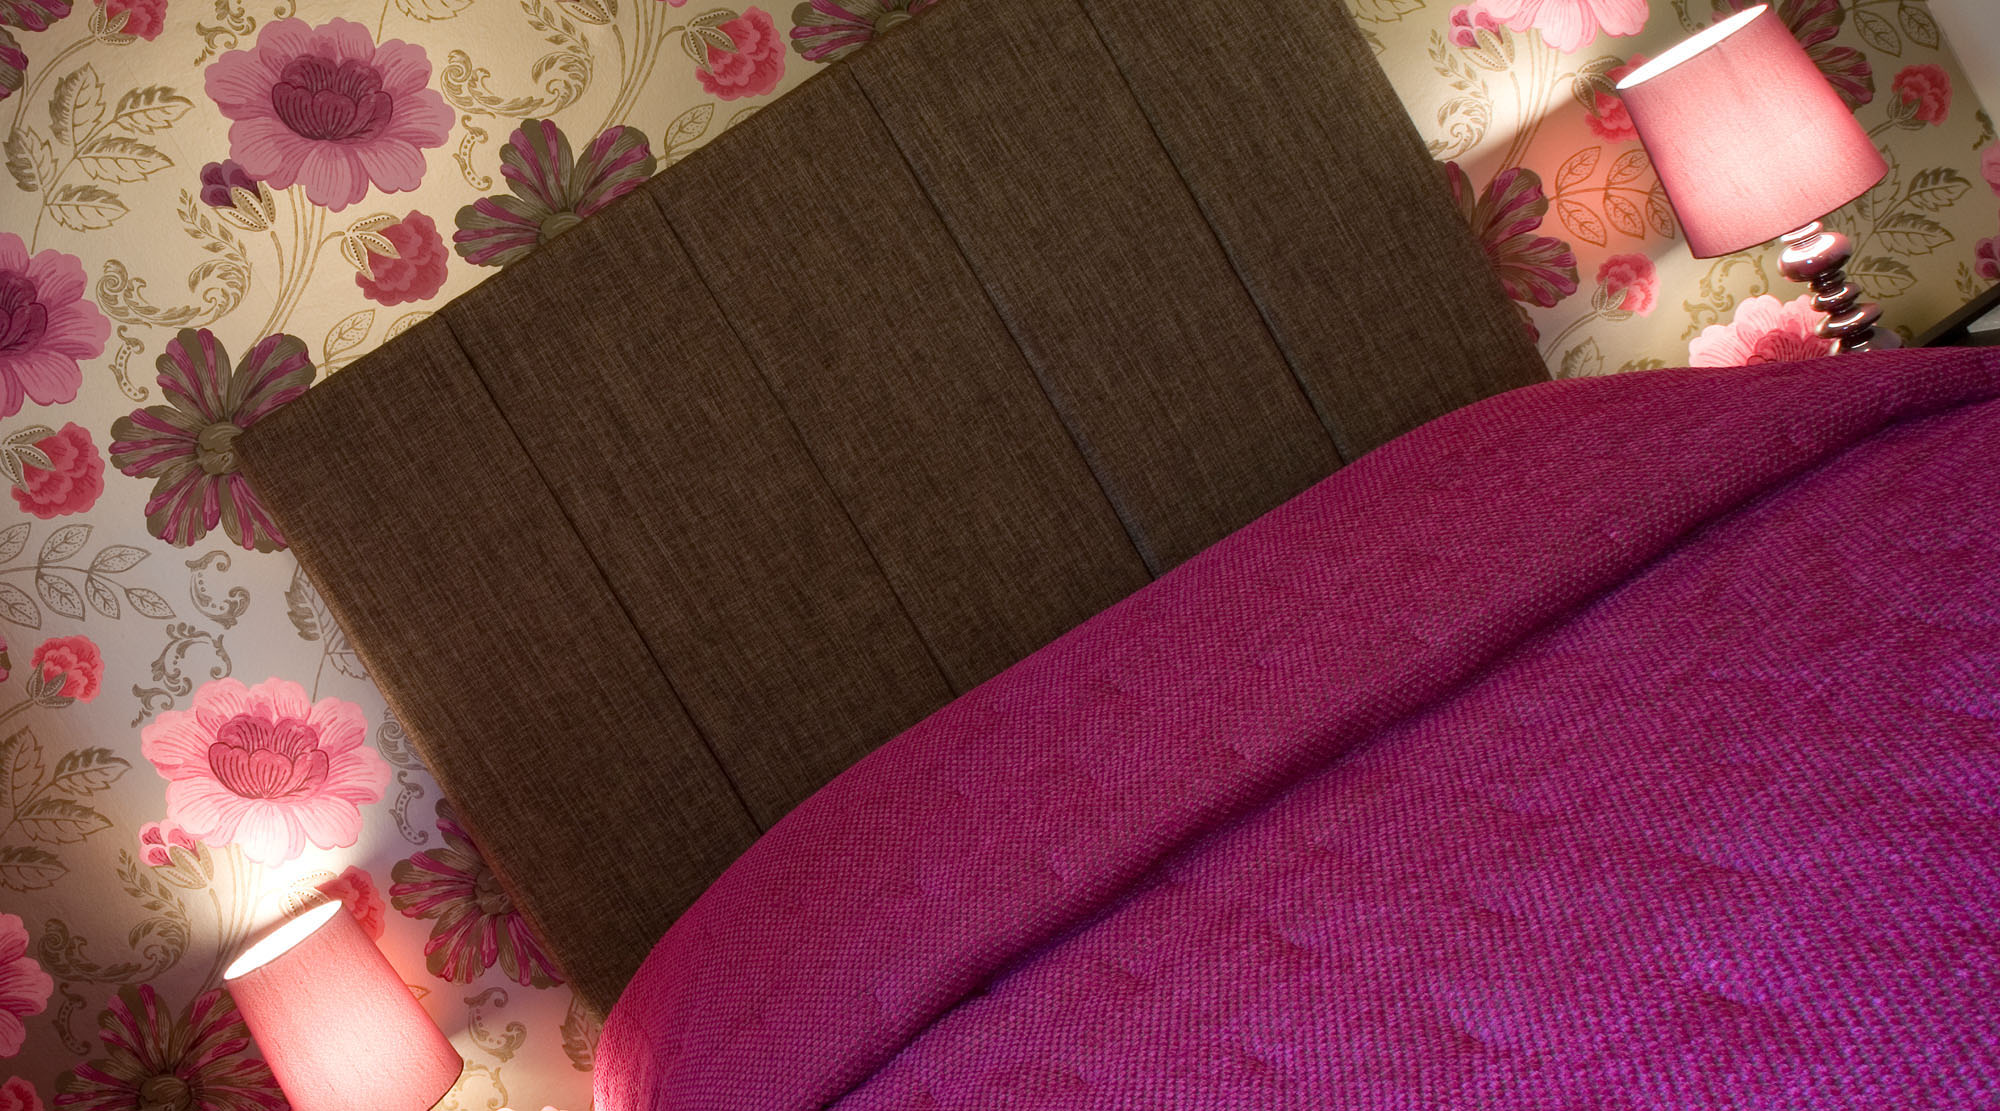 Fushia and brown themed bedroom showing feature wall floral wallpaper, padded headboard and duvet cover.